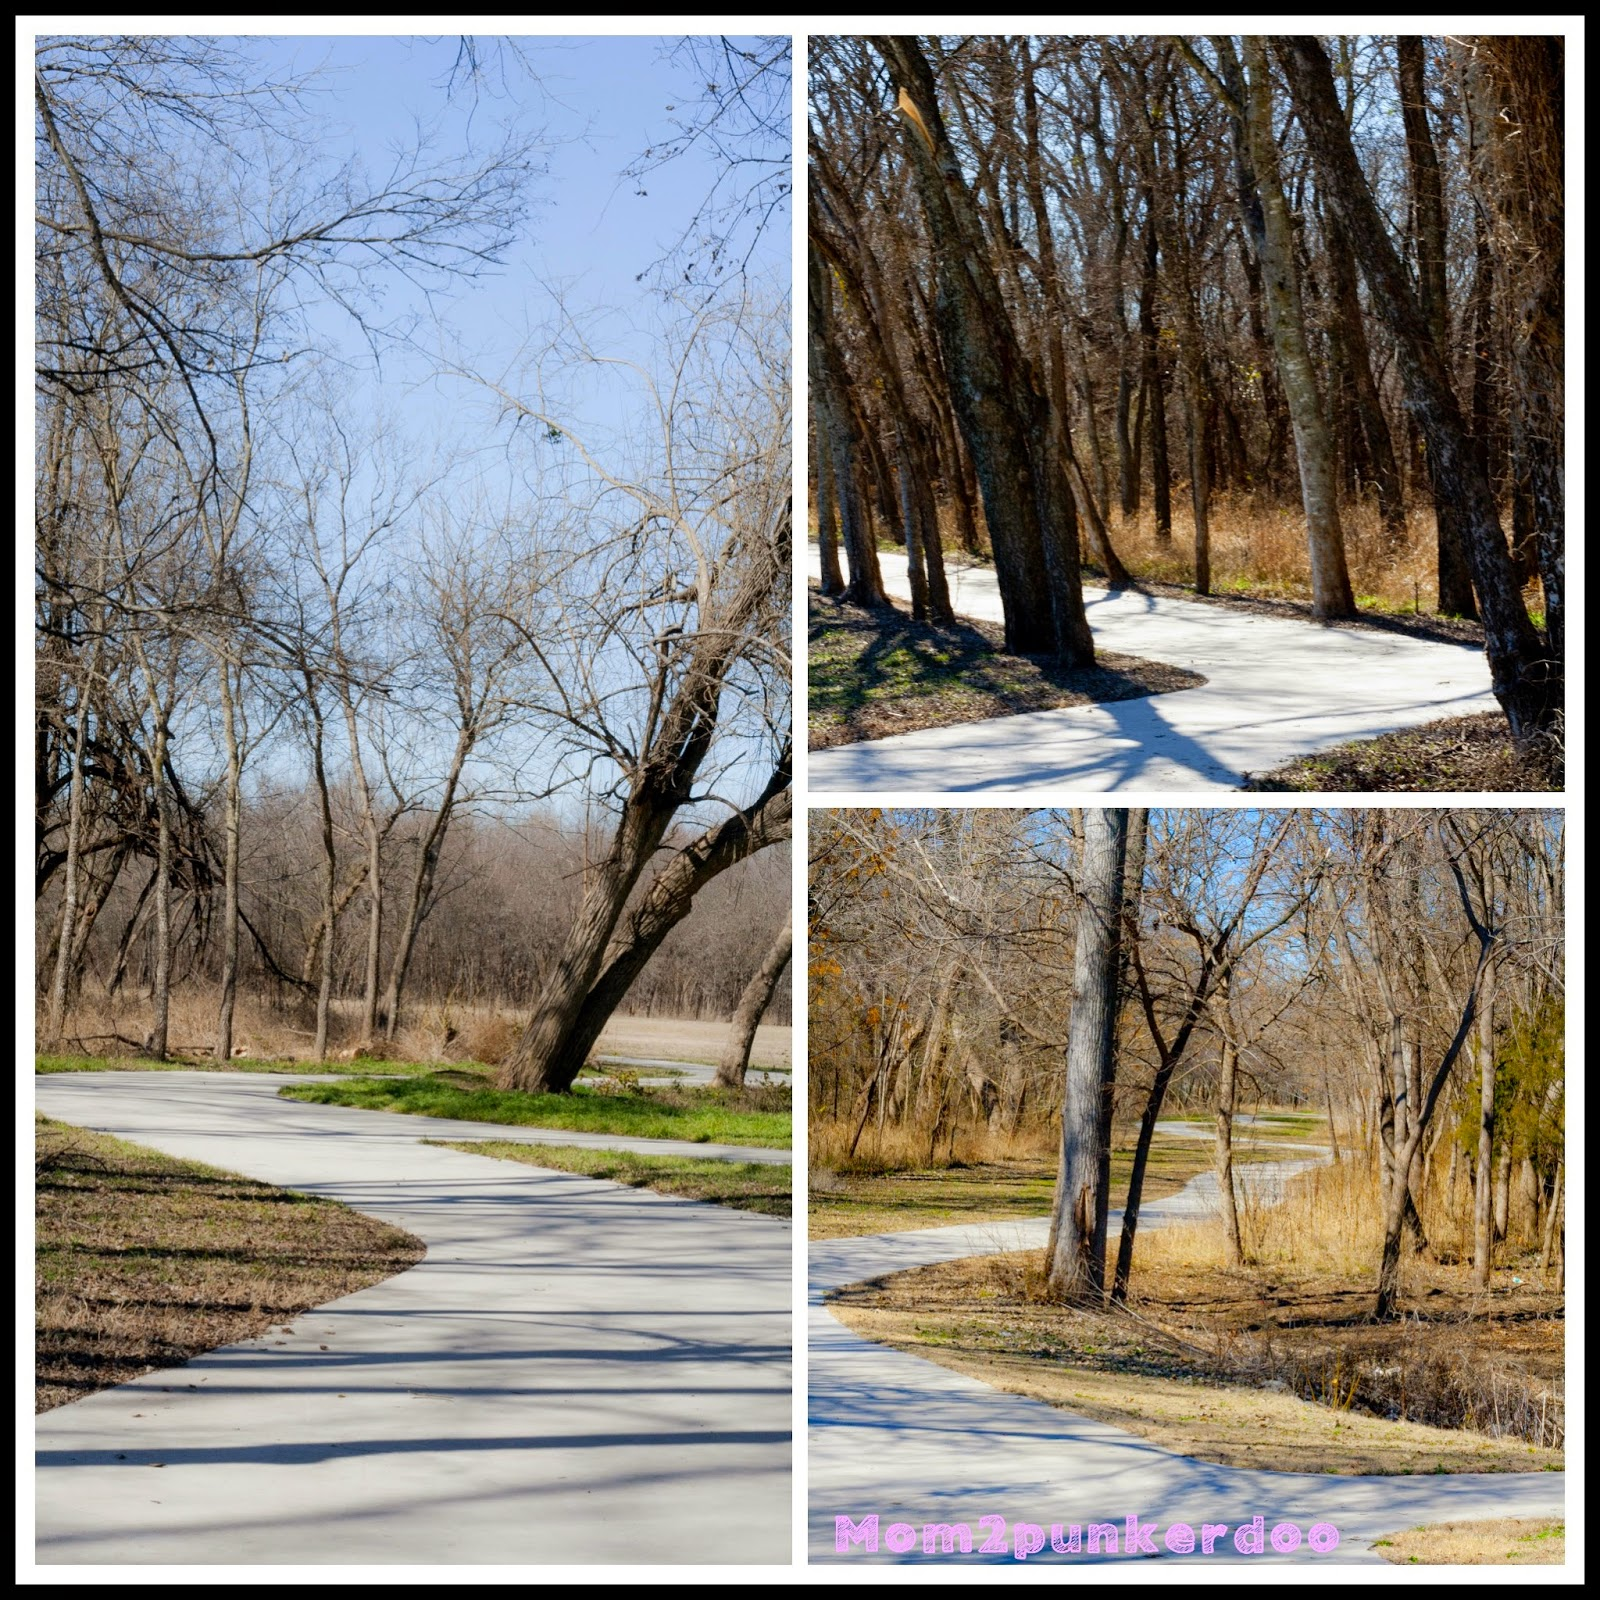 McKinney Texas Trails Mom2punkerdoo